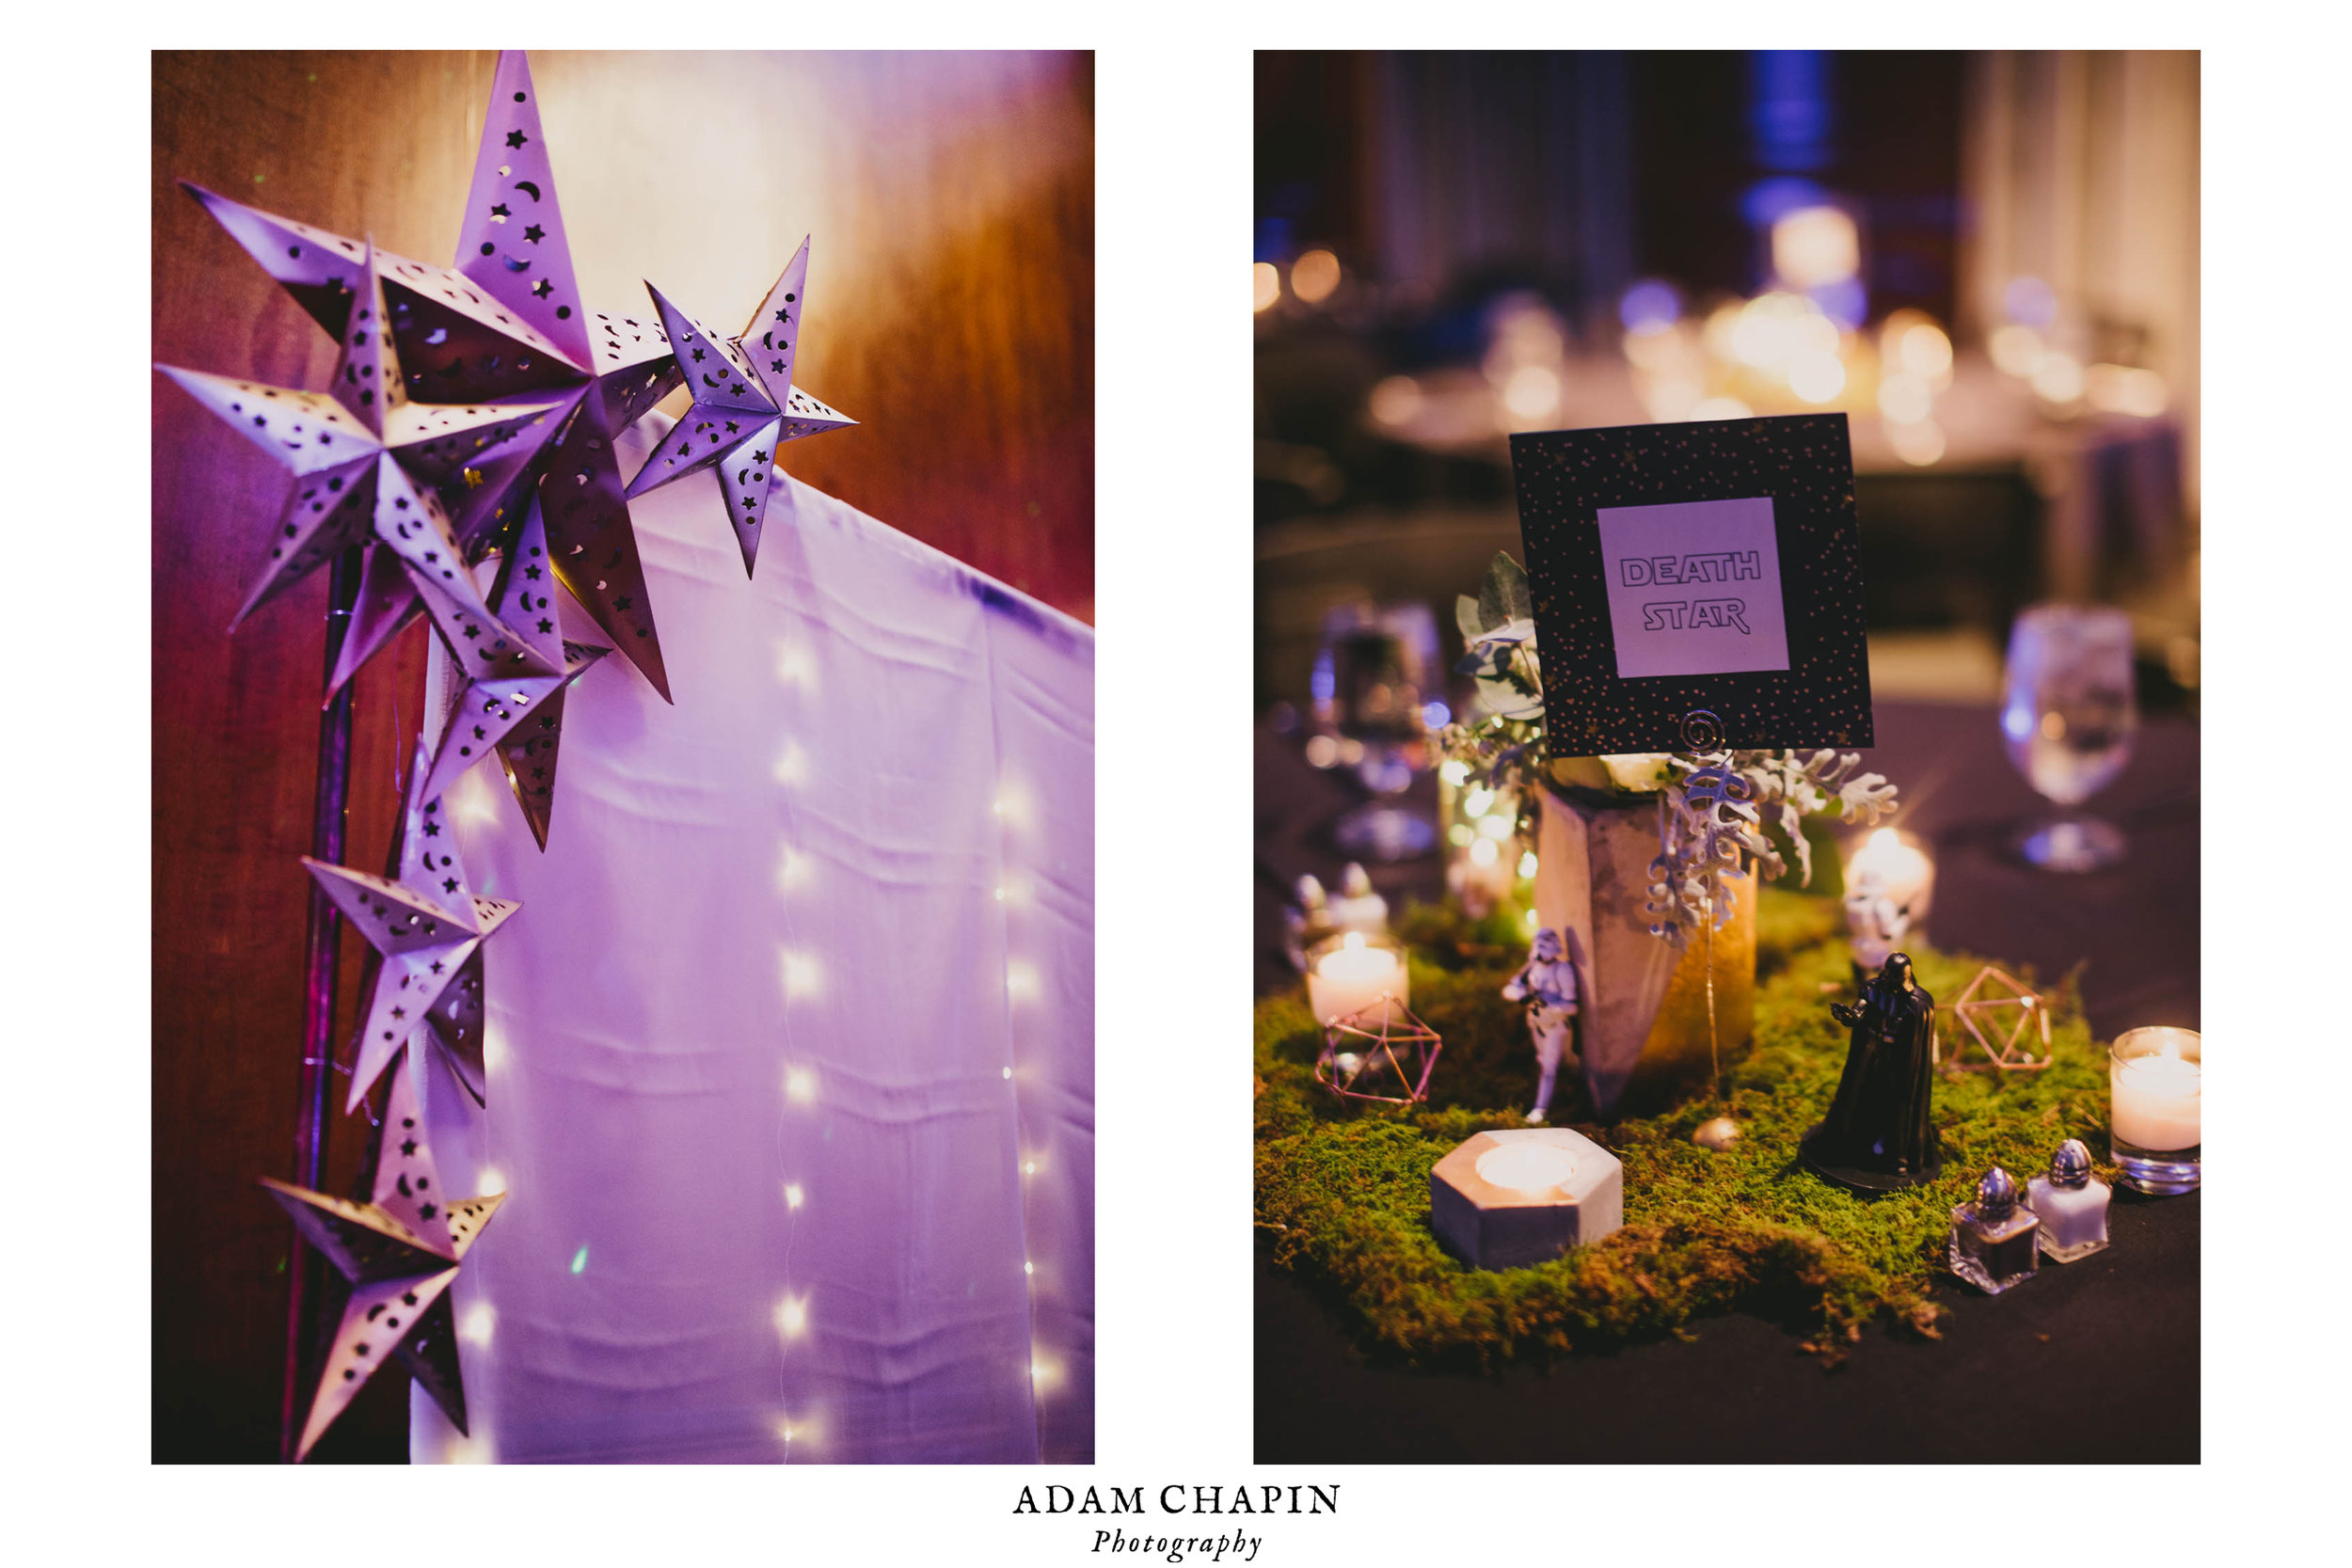 21c-hotel-durham-wedding-table-details-photo.jpg